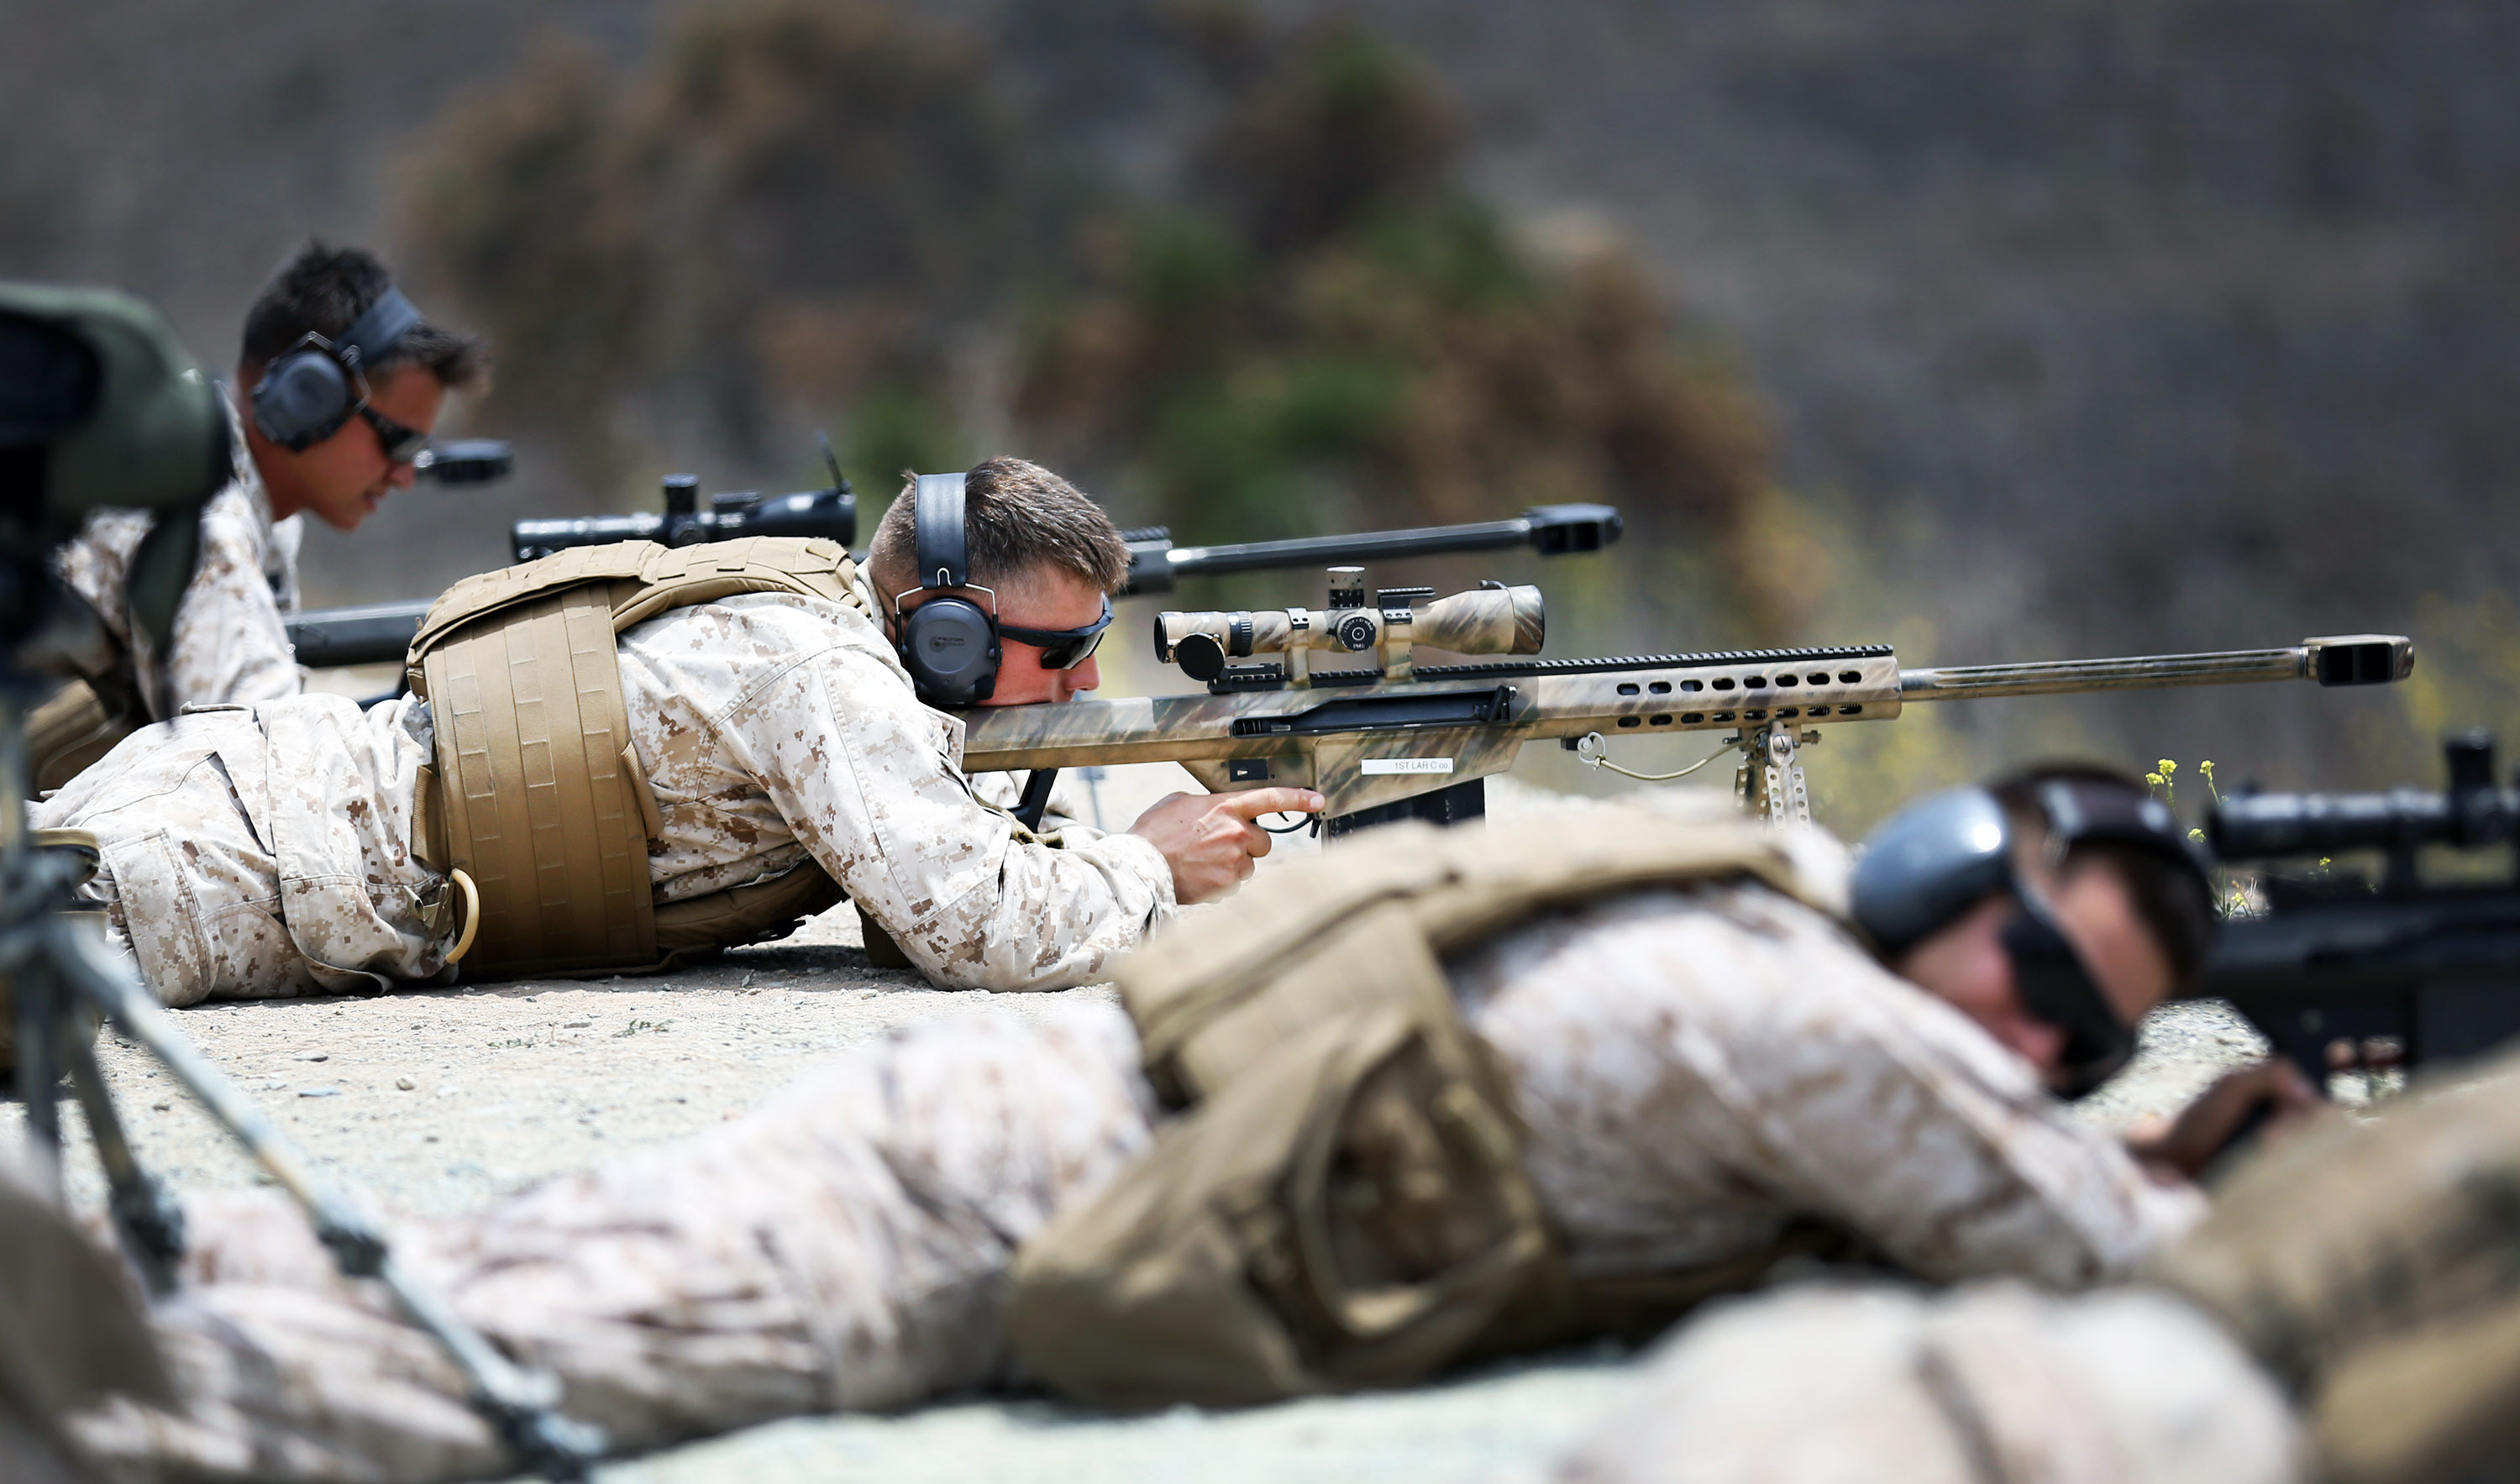 A Marine's M107 Sniper Rifle Failed During a Firefight—so He Called Customer Service